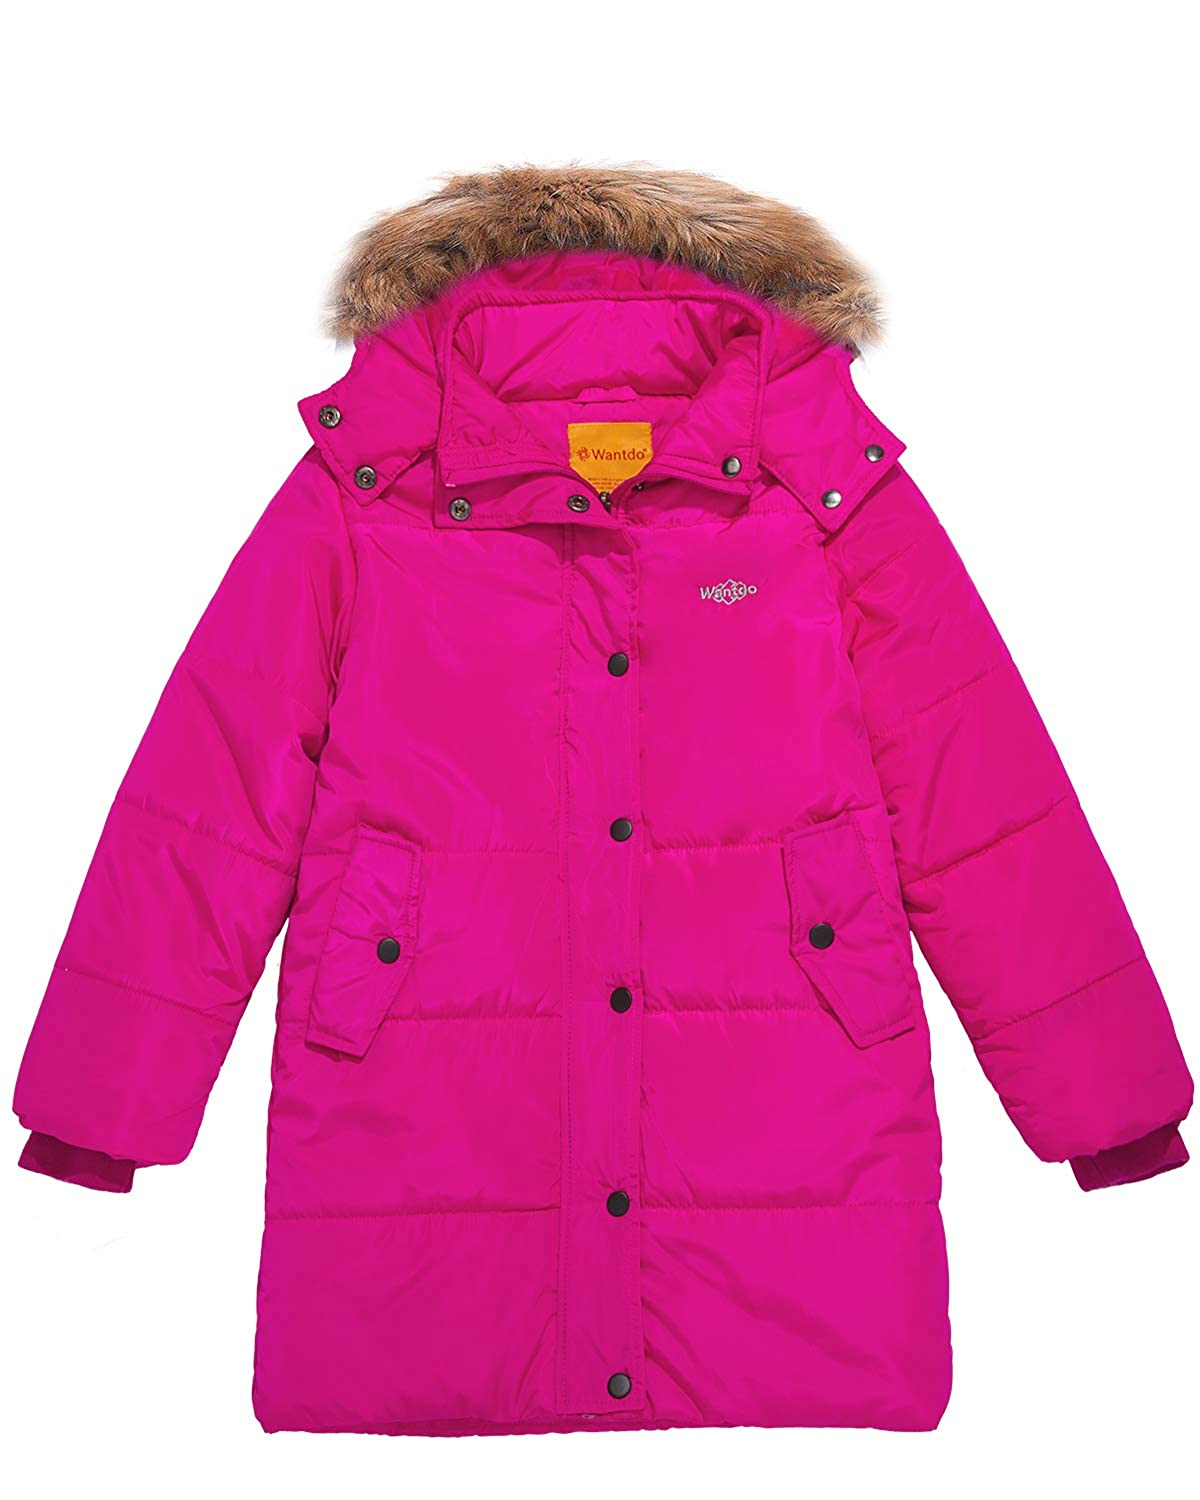 Rose Taille 14 16 Wantdo Fille Veste d'hiver Coupe-Vent